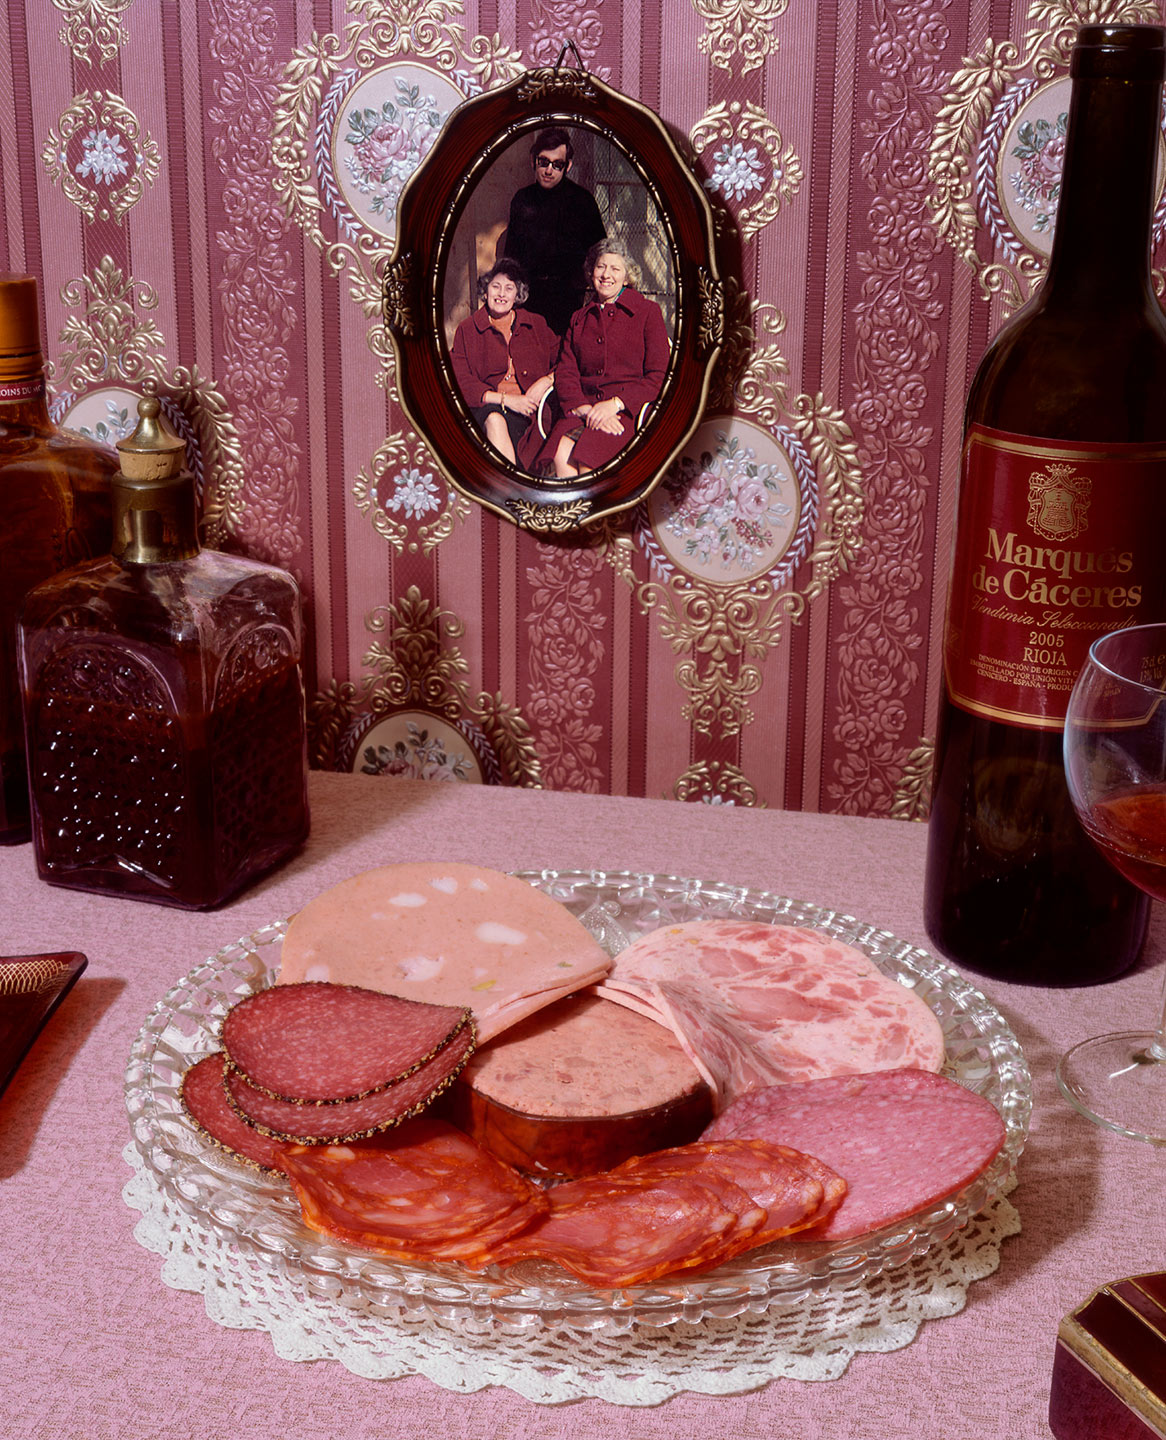 Rob_sinister_cold_meat_platter